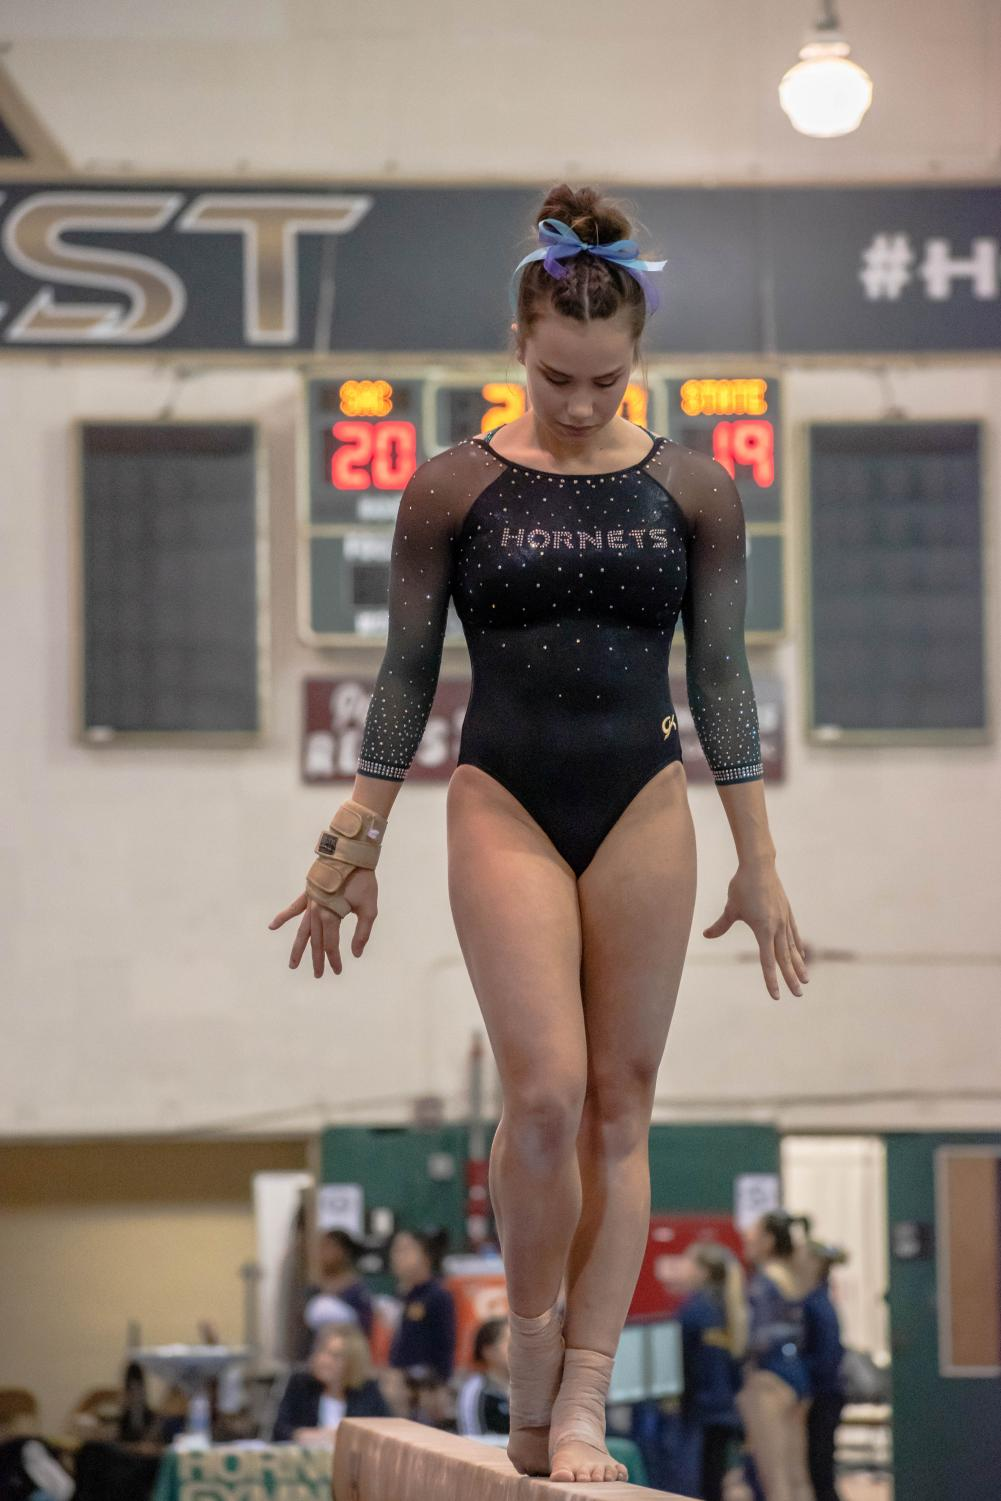 Sac+State+senior+gymnast+Lauren+Schmeiss+performs+on+the+balance+beam%2C+where+she+scored+a+9.750.+On+her+next+event%2C+floor%2C+she+set+a+career+high+score+of+9.850.